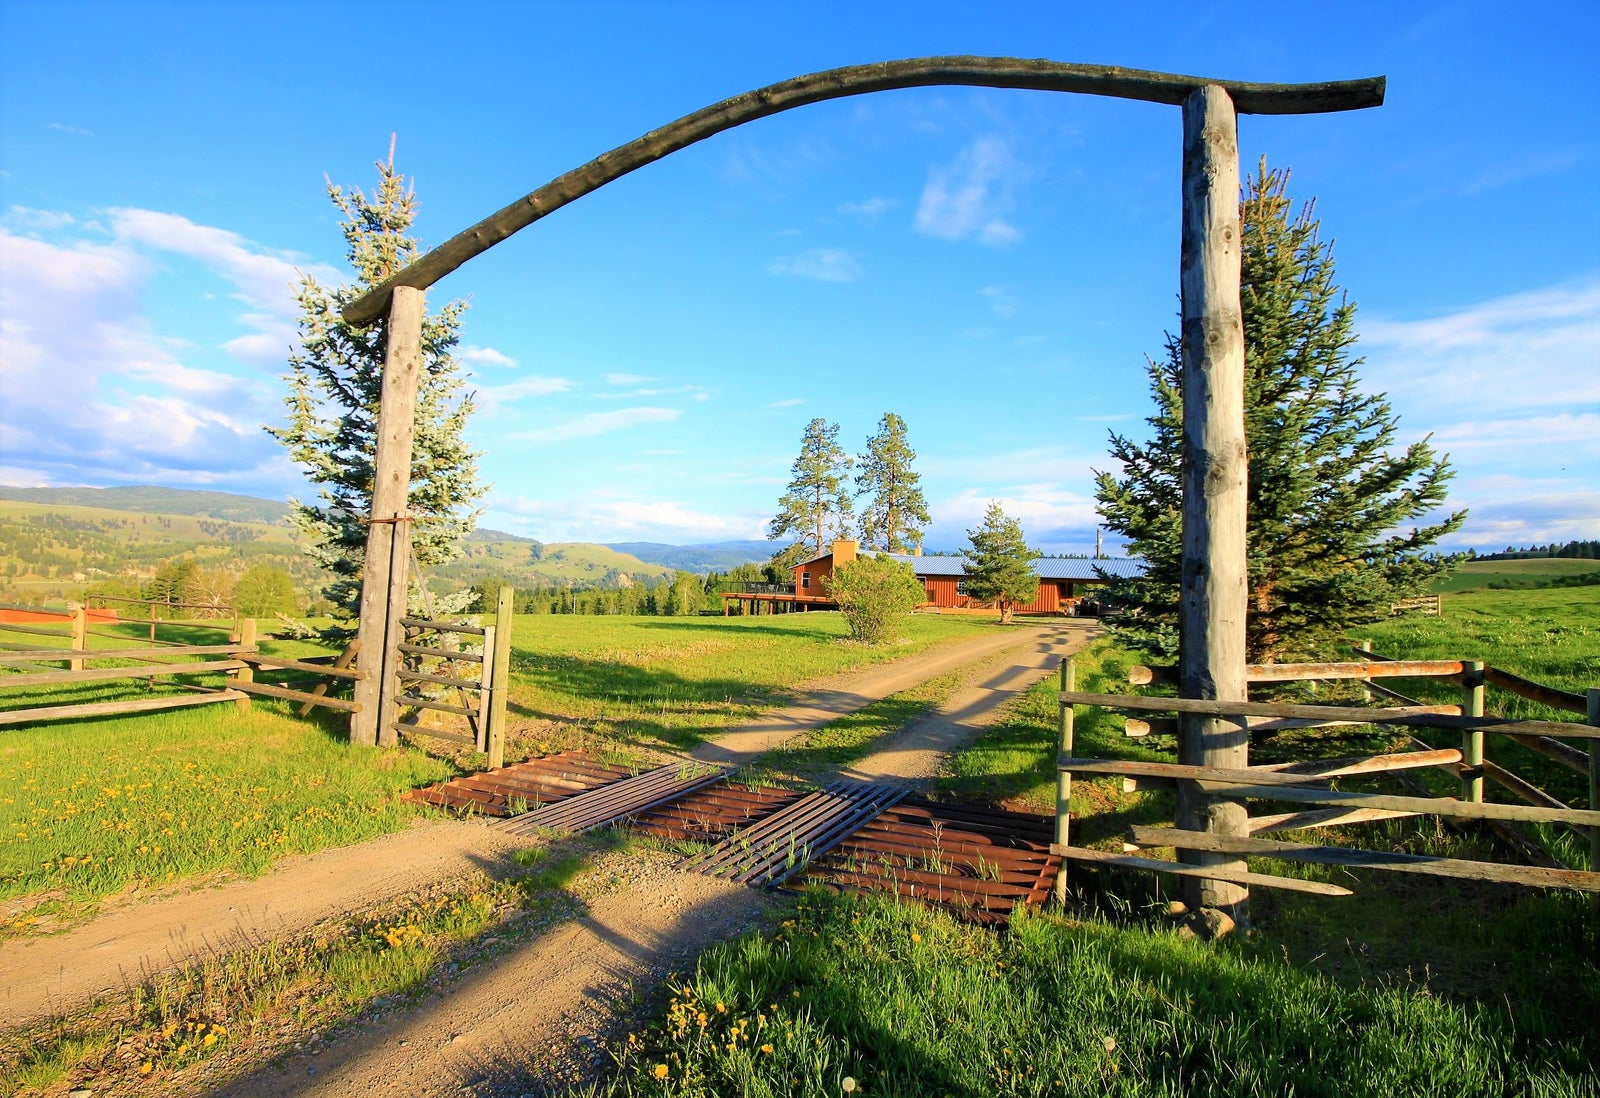 320 acre Ranch on Highway 5A just 6kms from Princeton, BC. Links to Buyers page